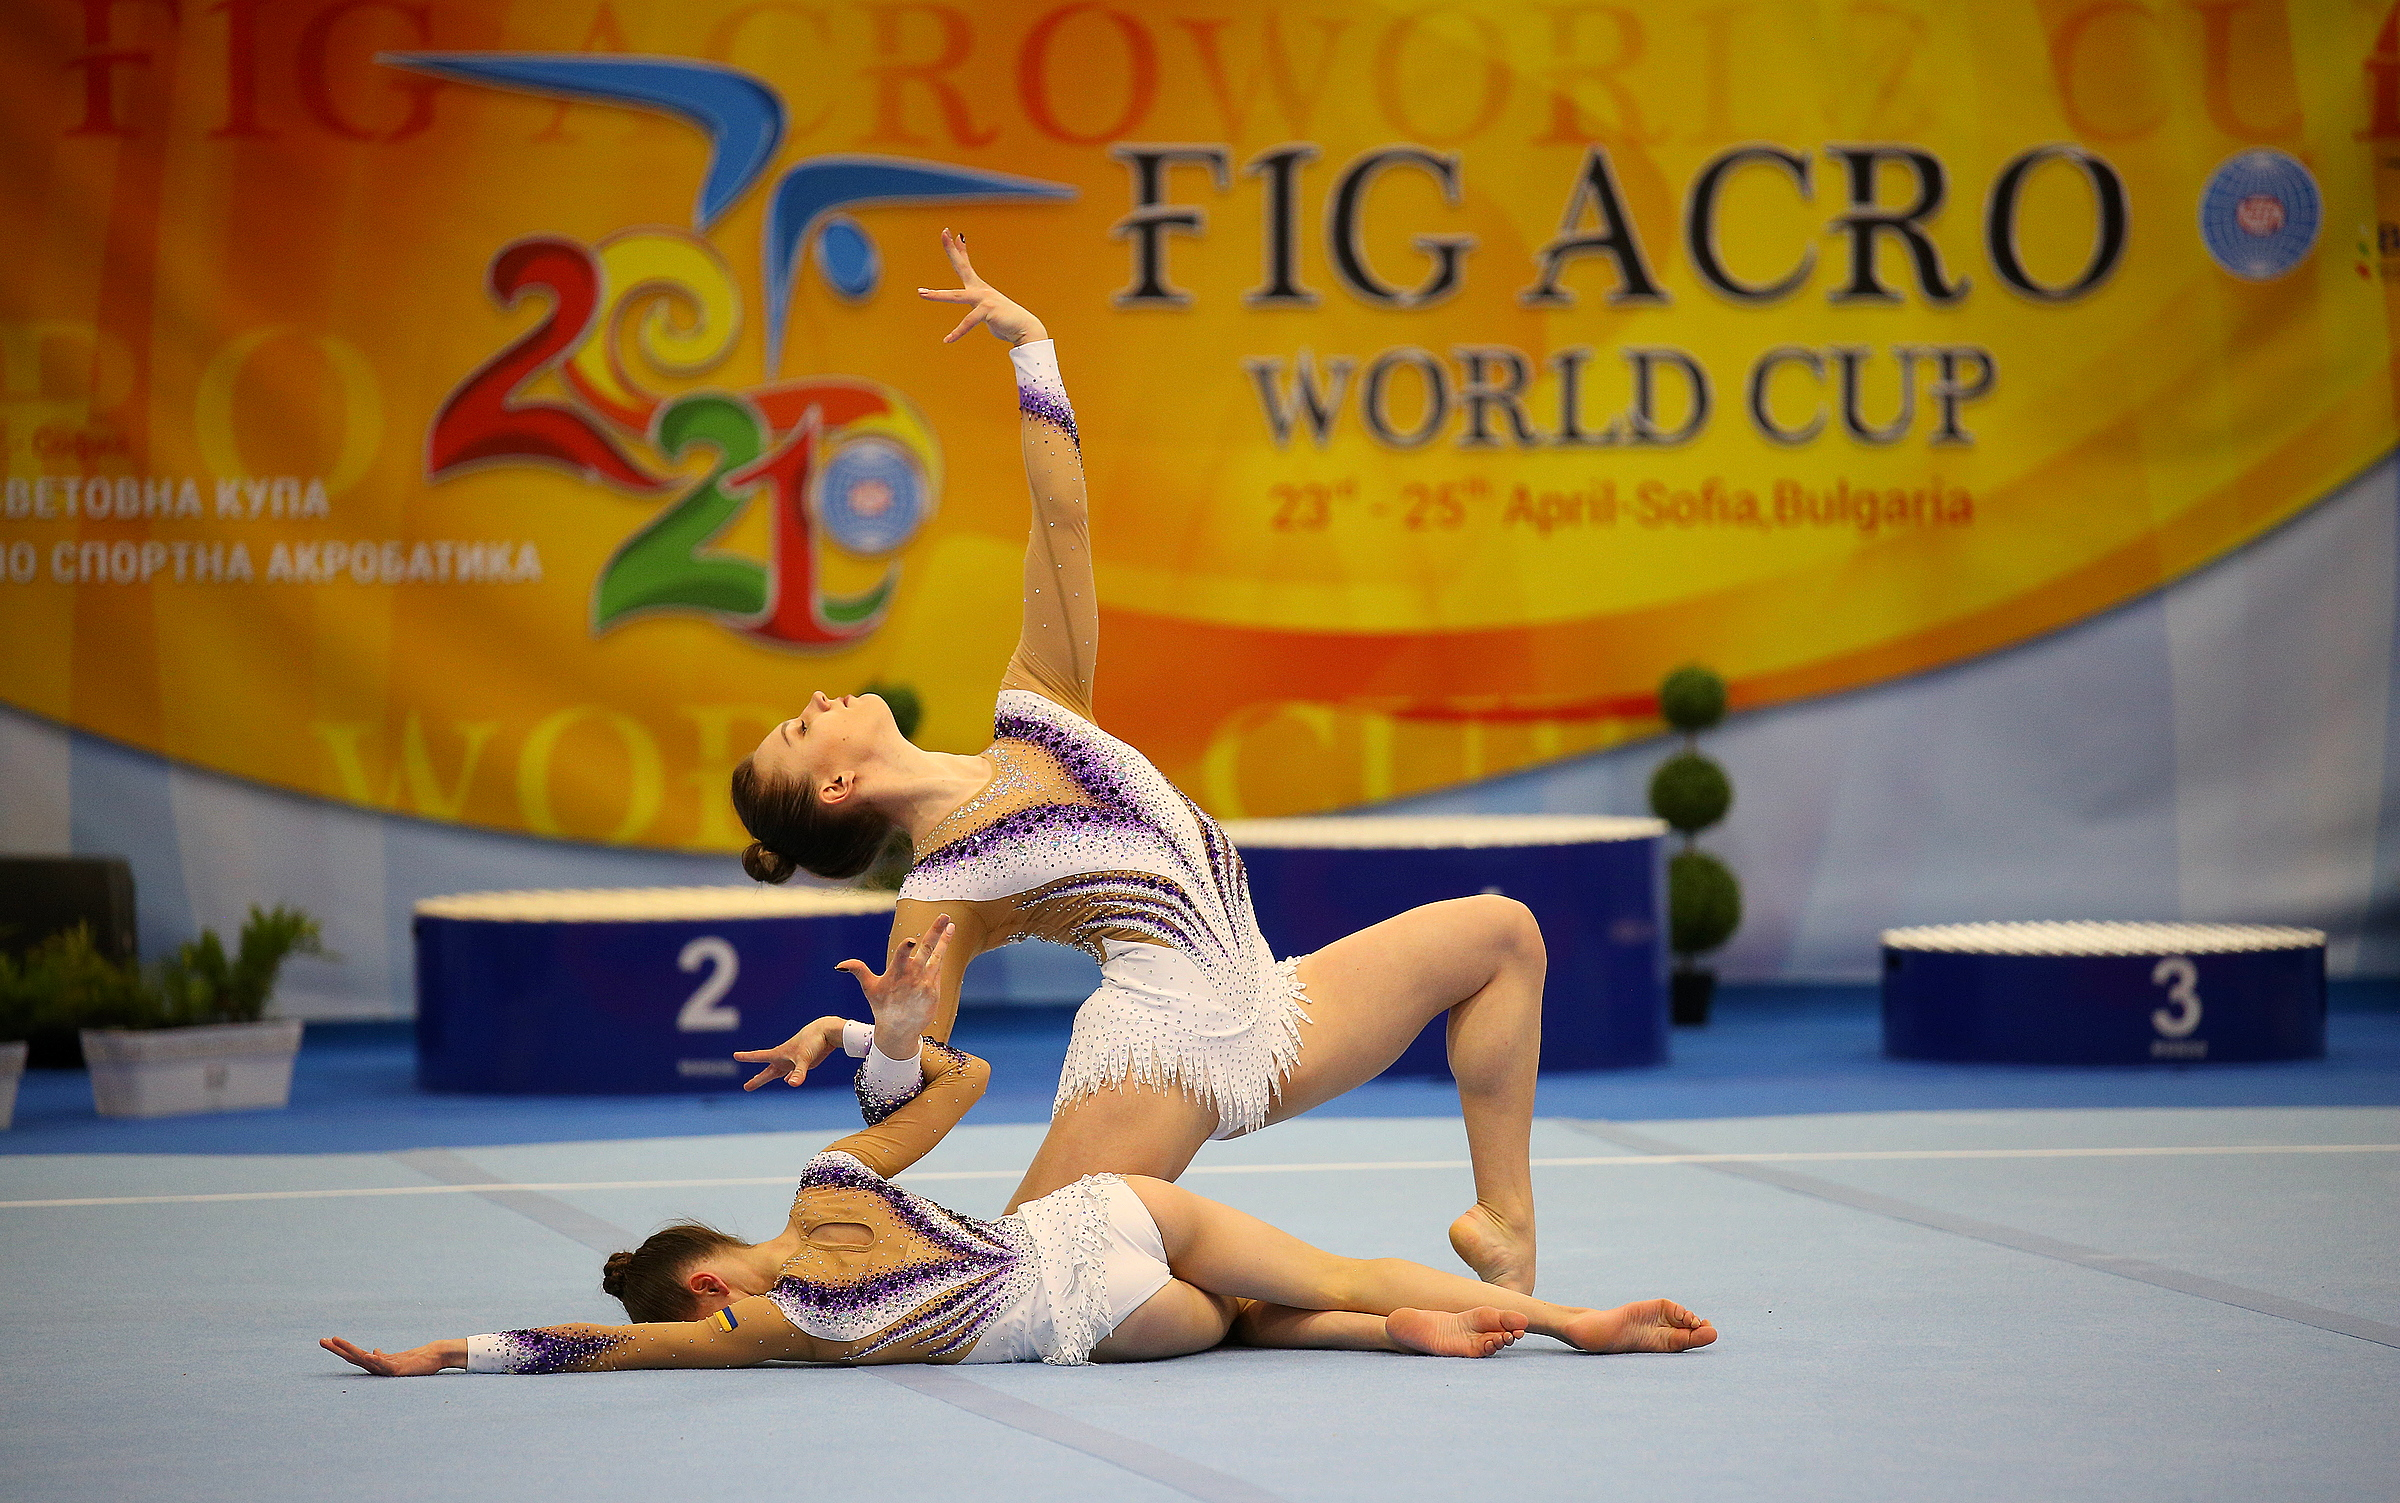 FIG ACRO WORLD CUP 23-25.04.2021